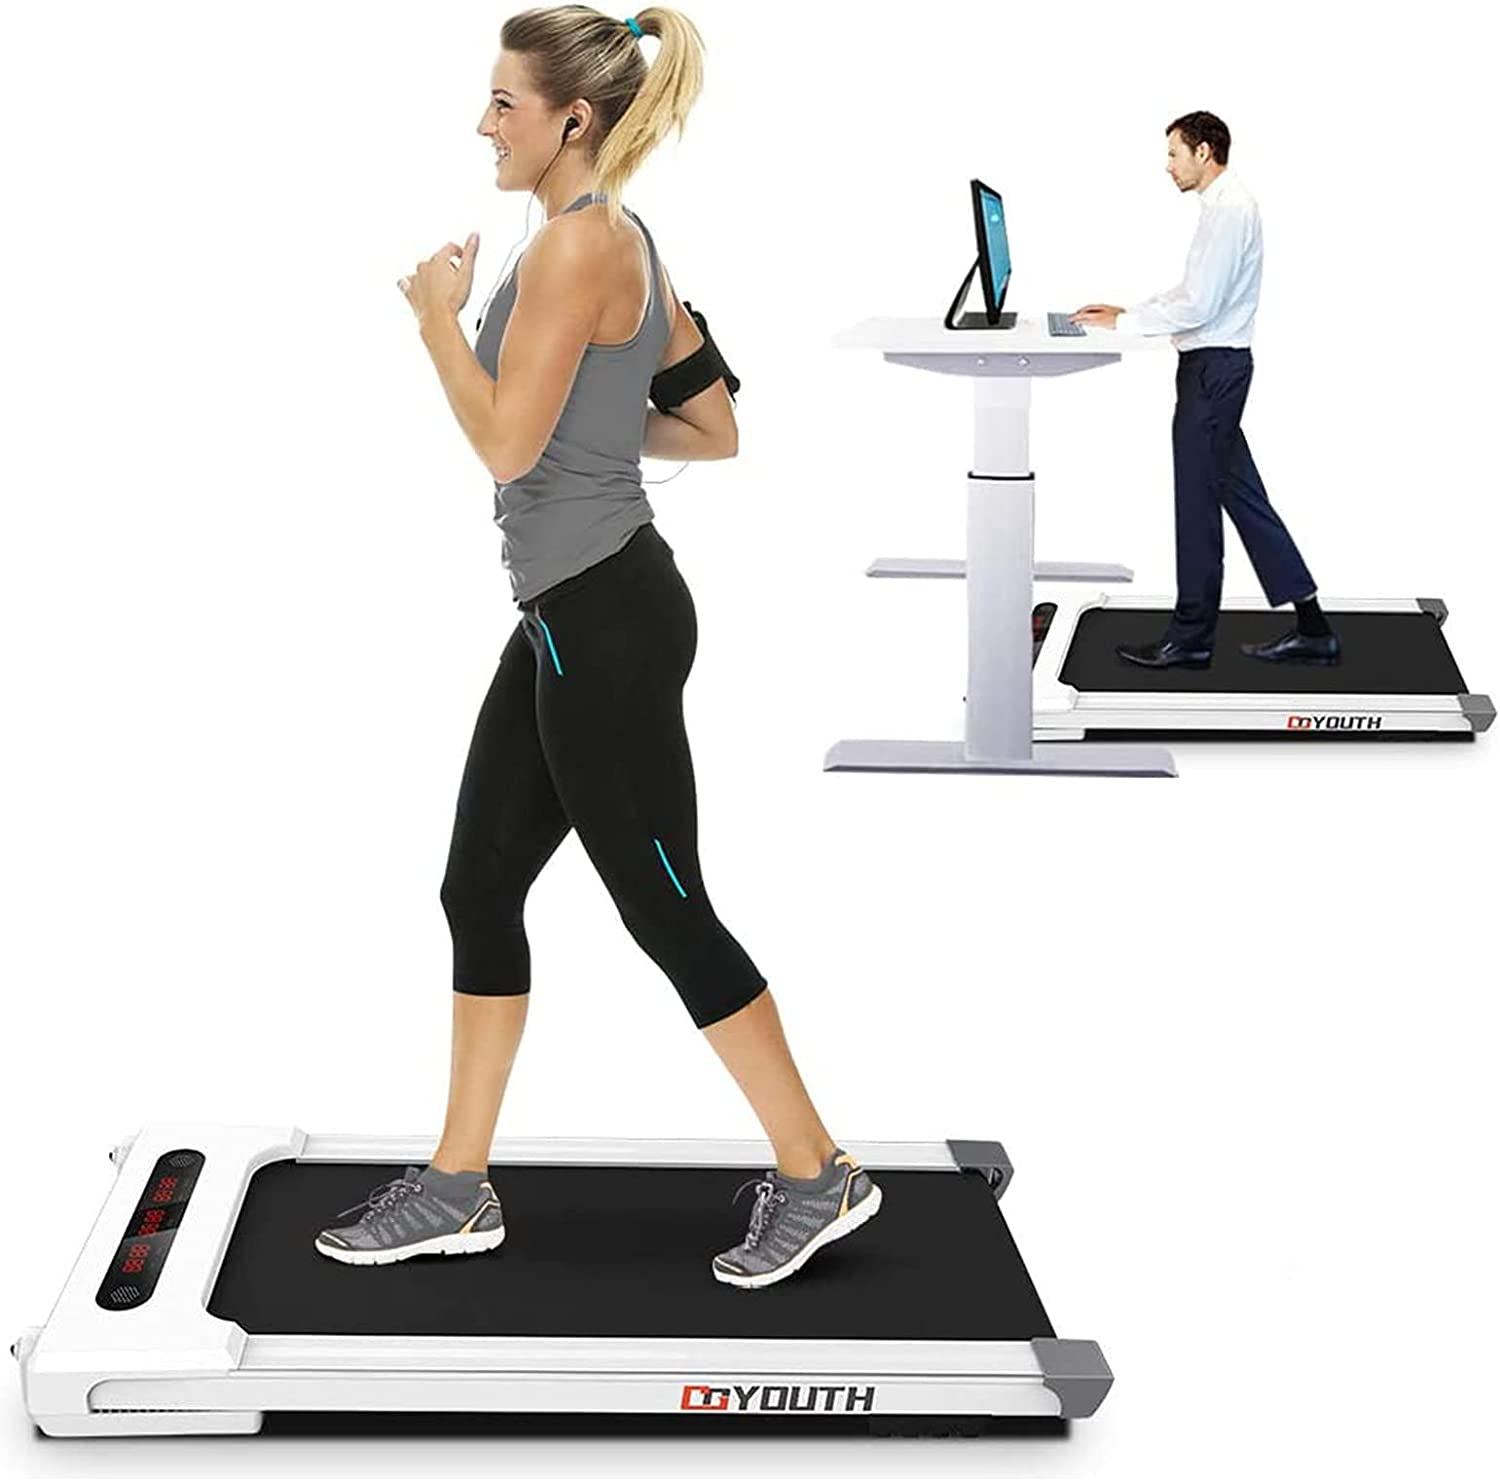 Goyouth 2 in 1 sale Under Desk Motorized latest Exercise Treadmill Electric